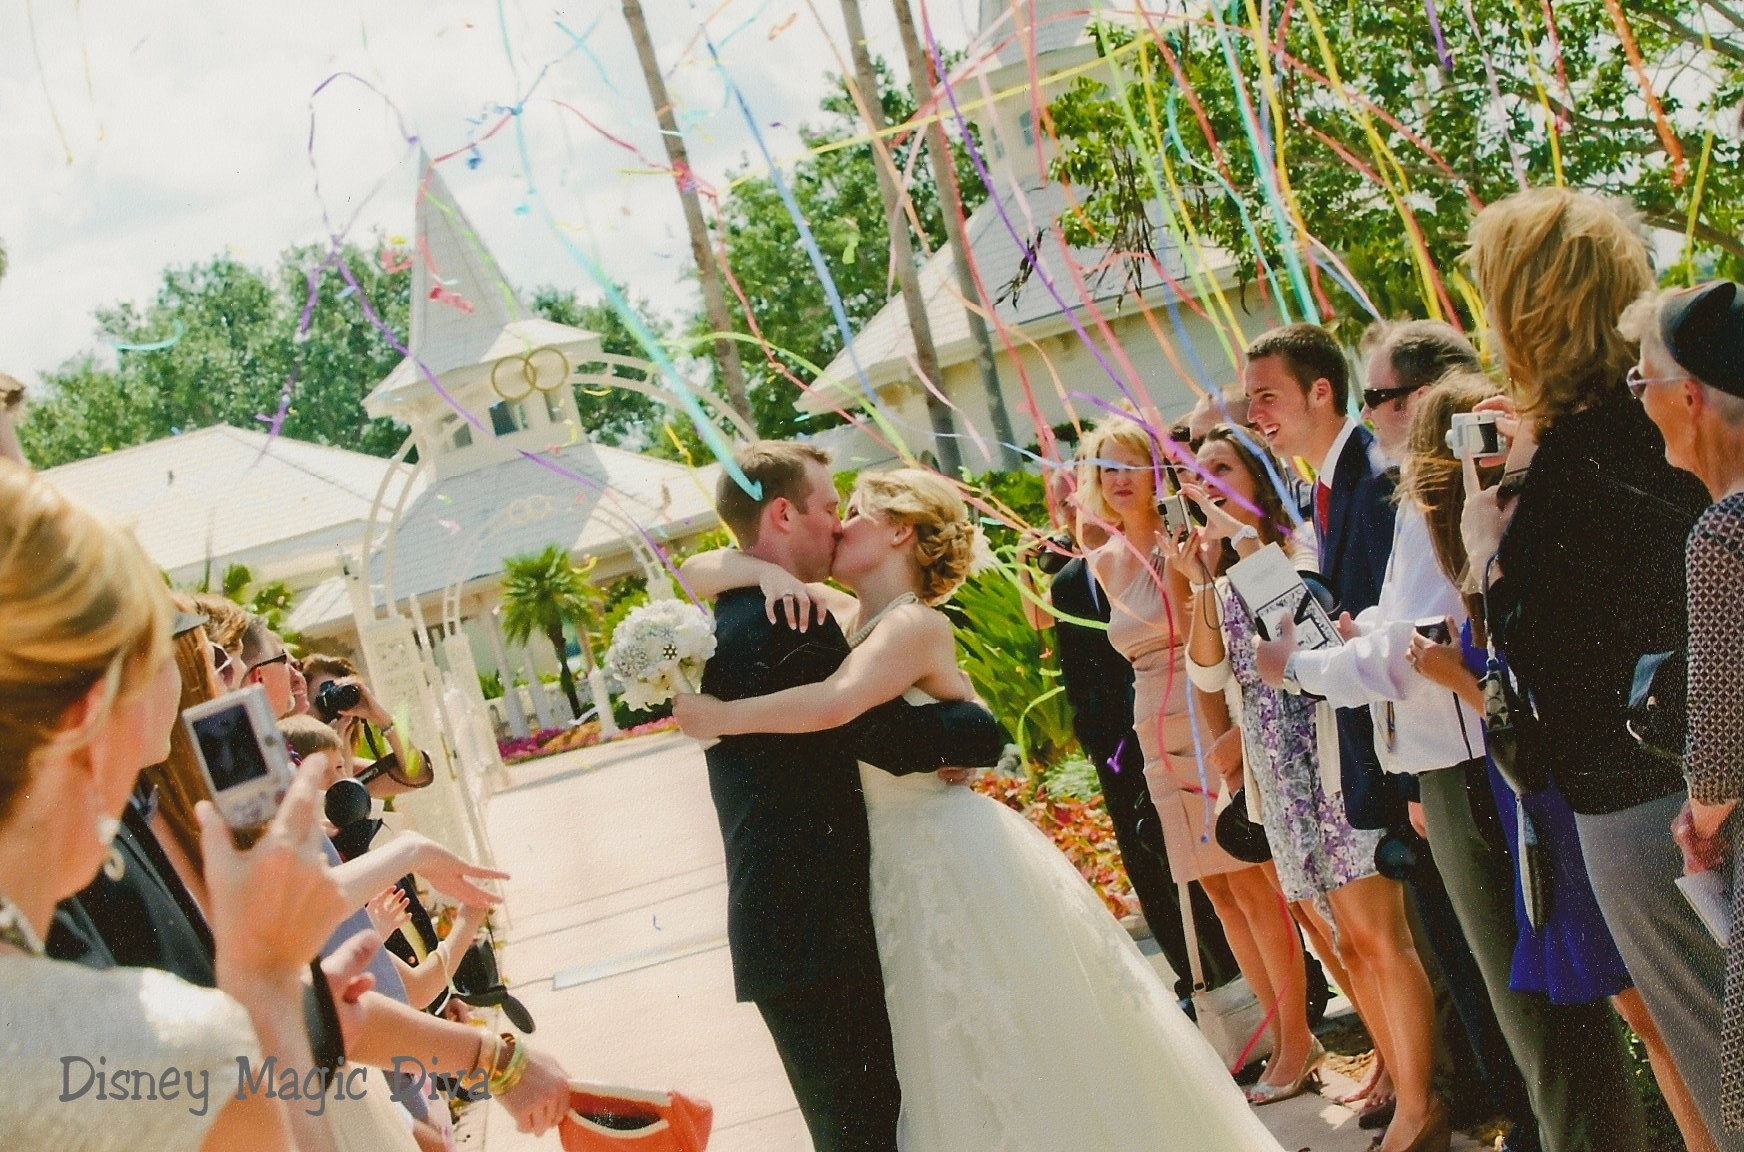 Tips to Make Your Disney Wedding Dream Come True